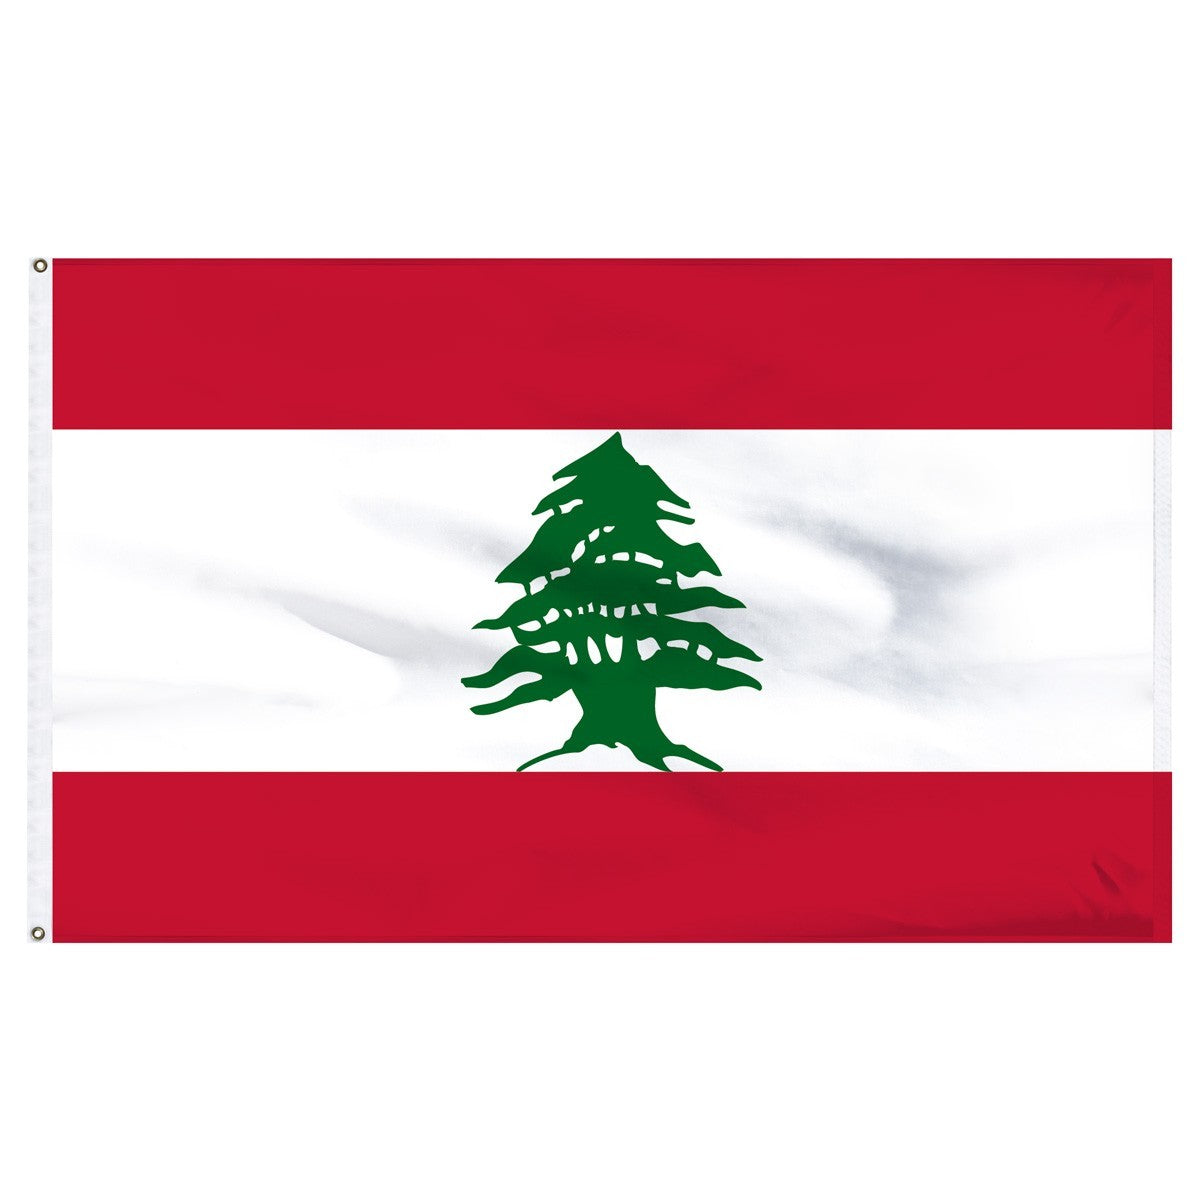 Lebanon 3' x 5' Outdoor Nylon Flag